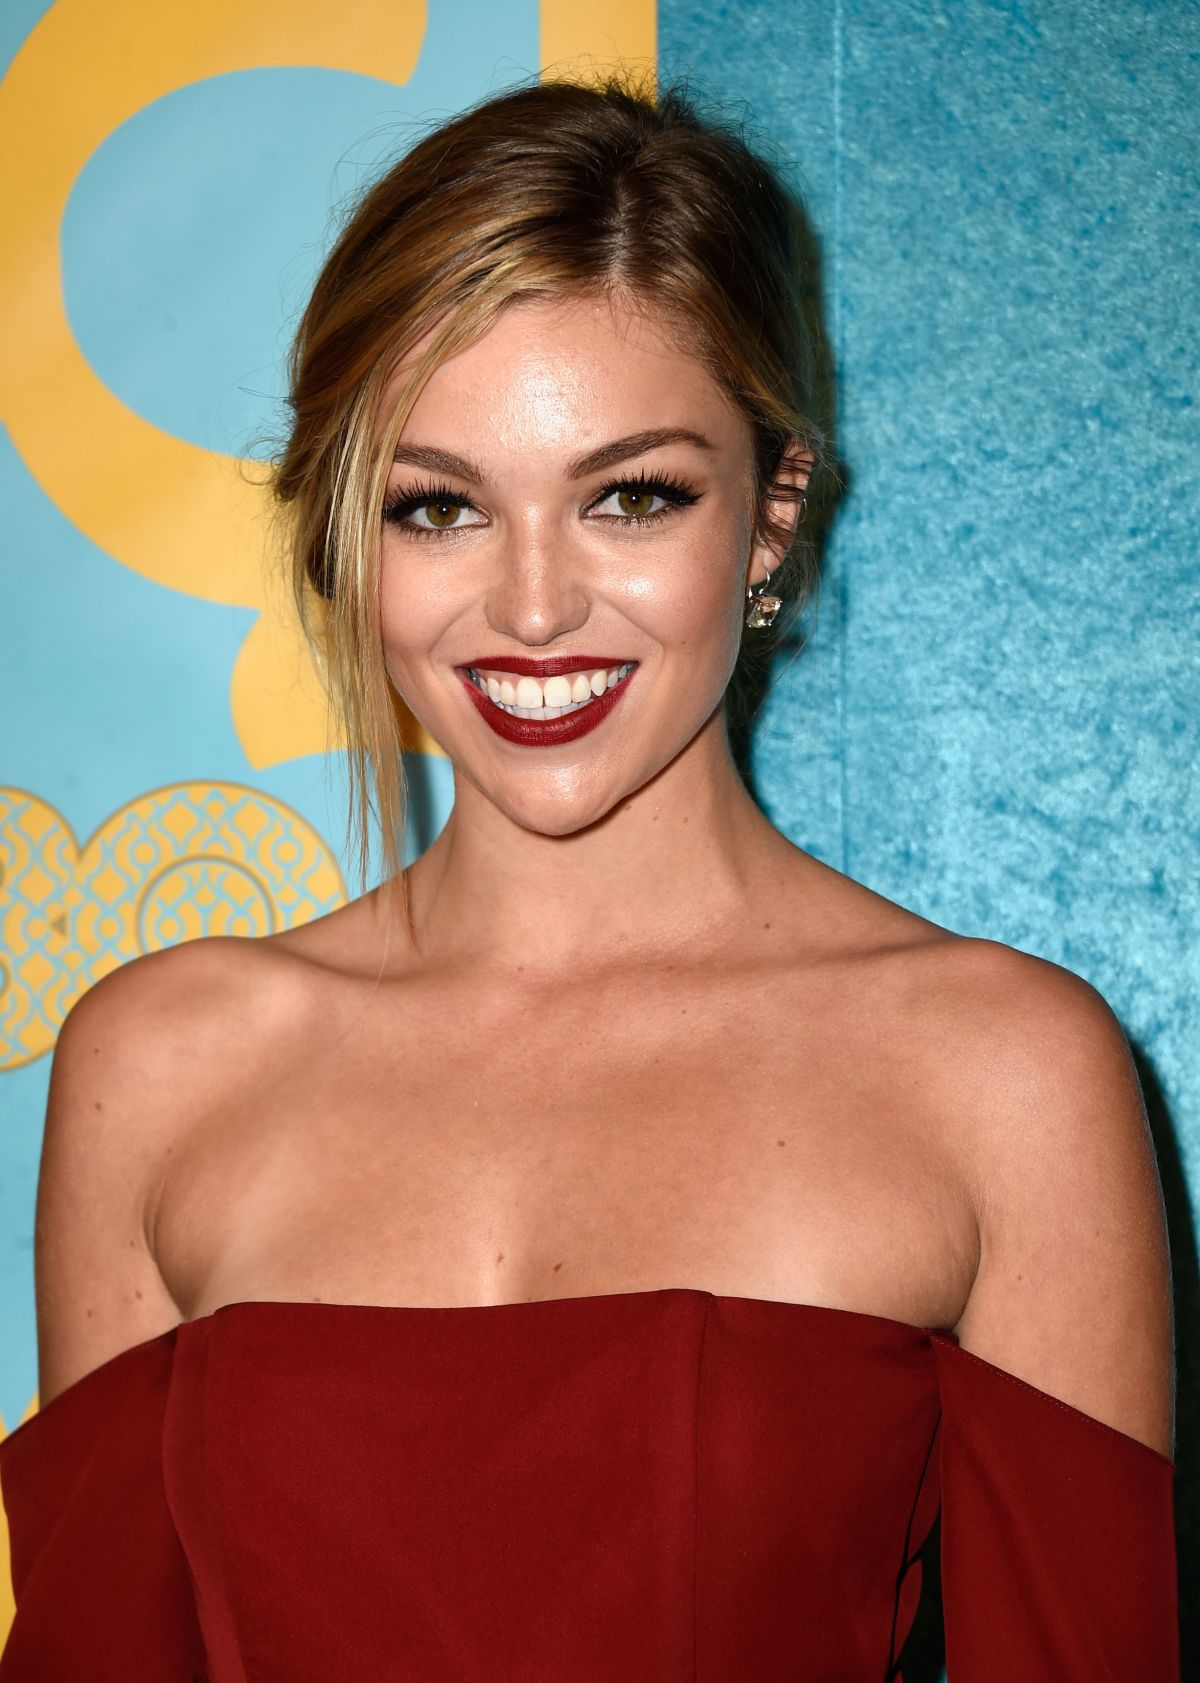 lili simmons actress